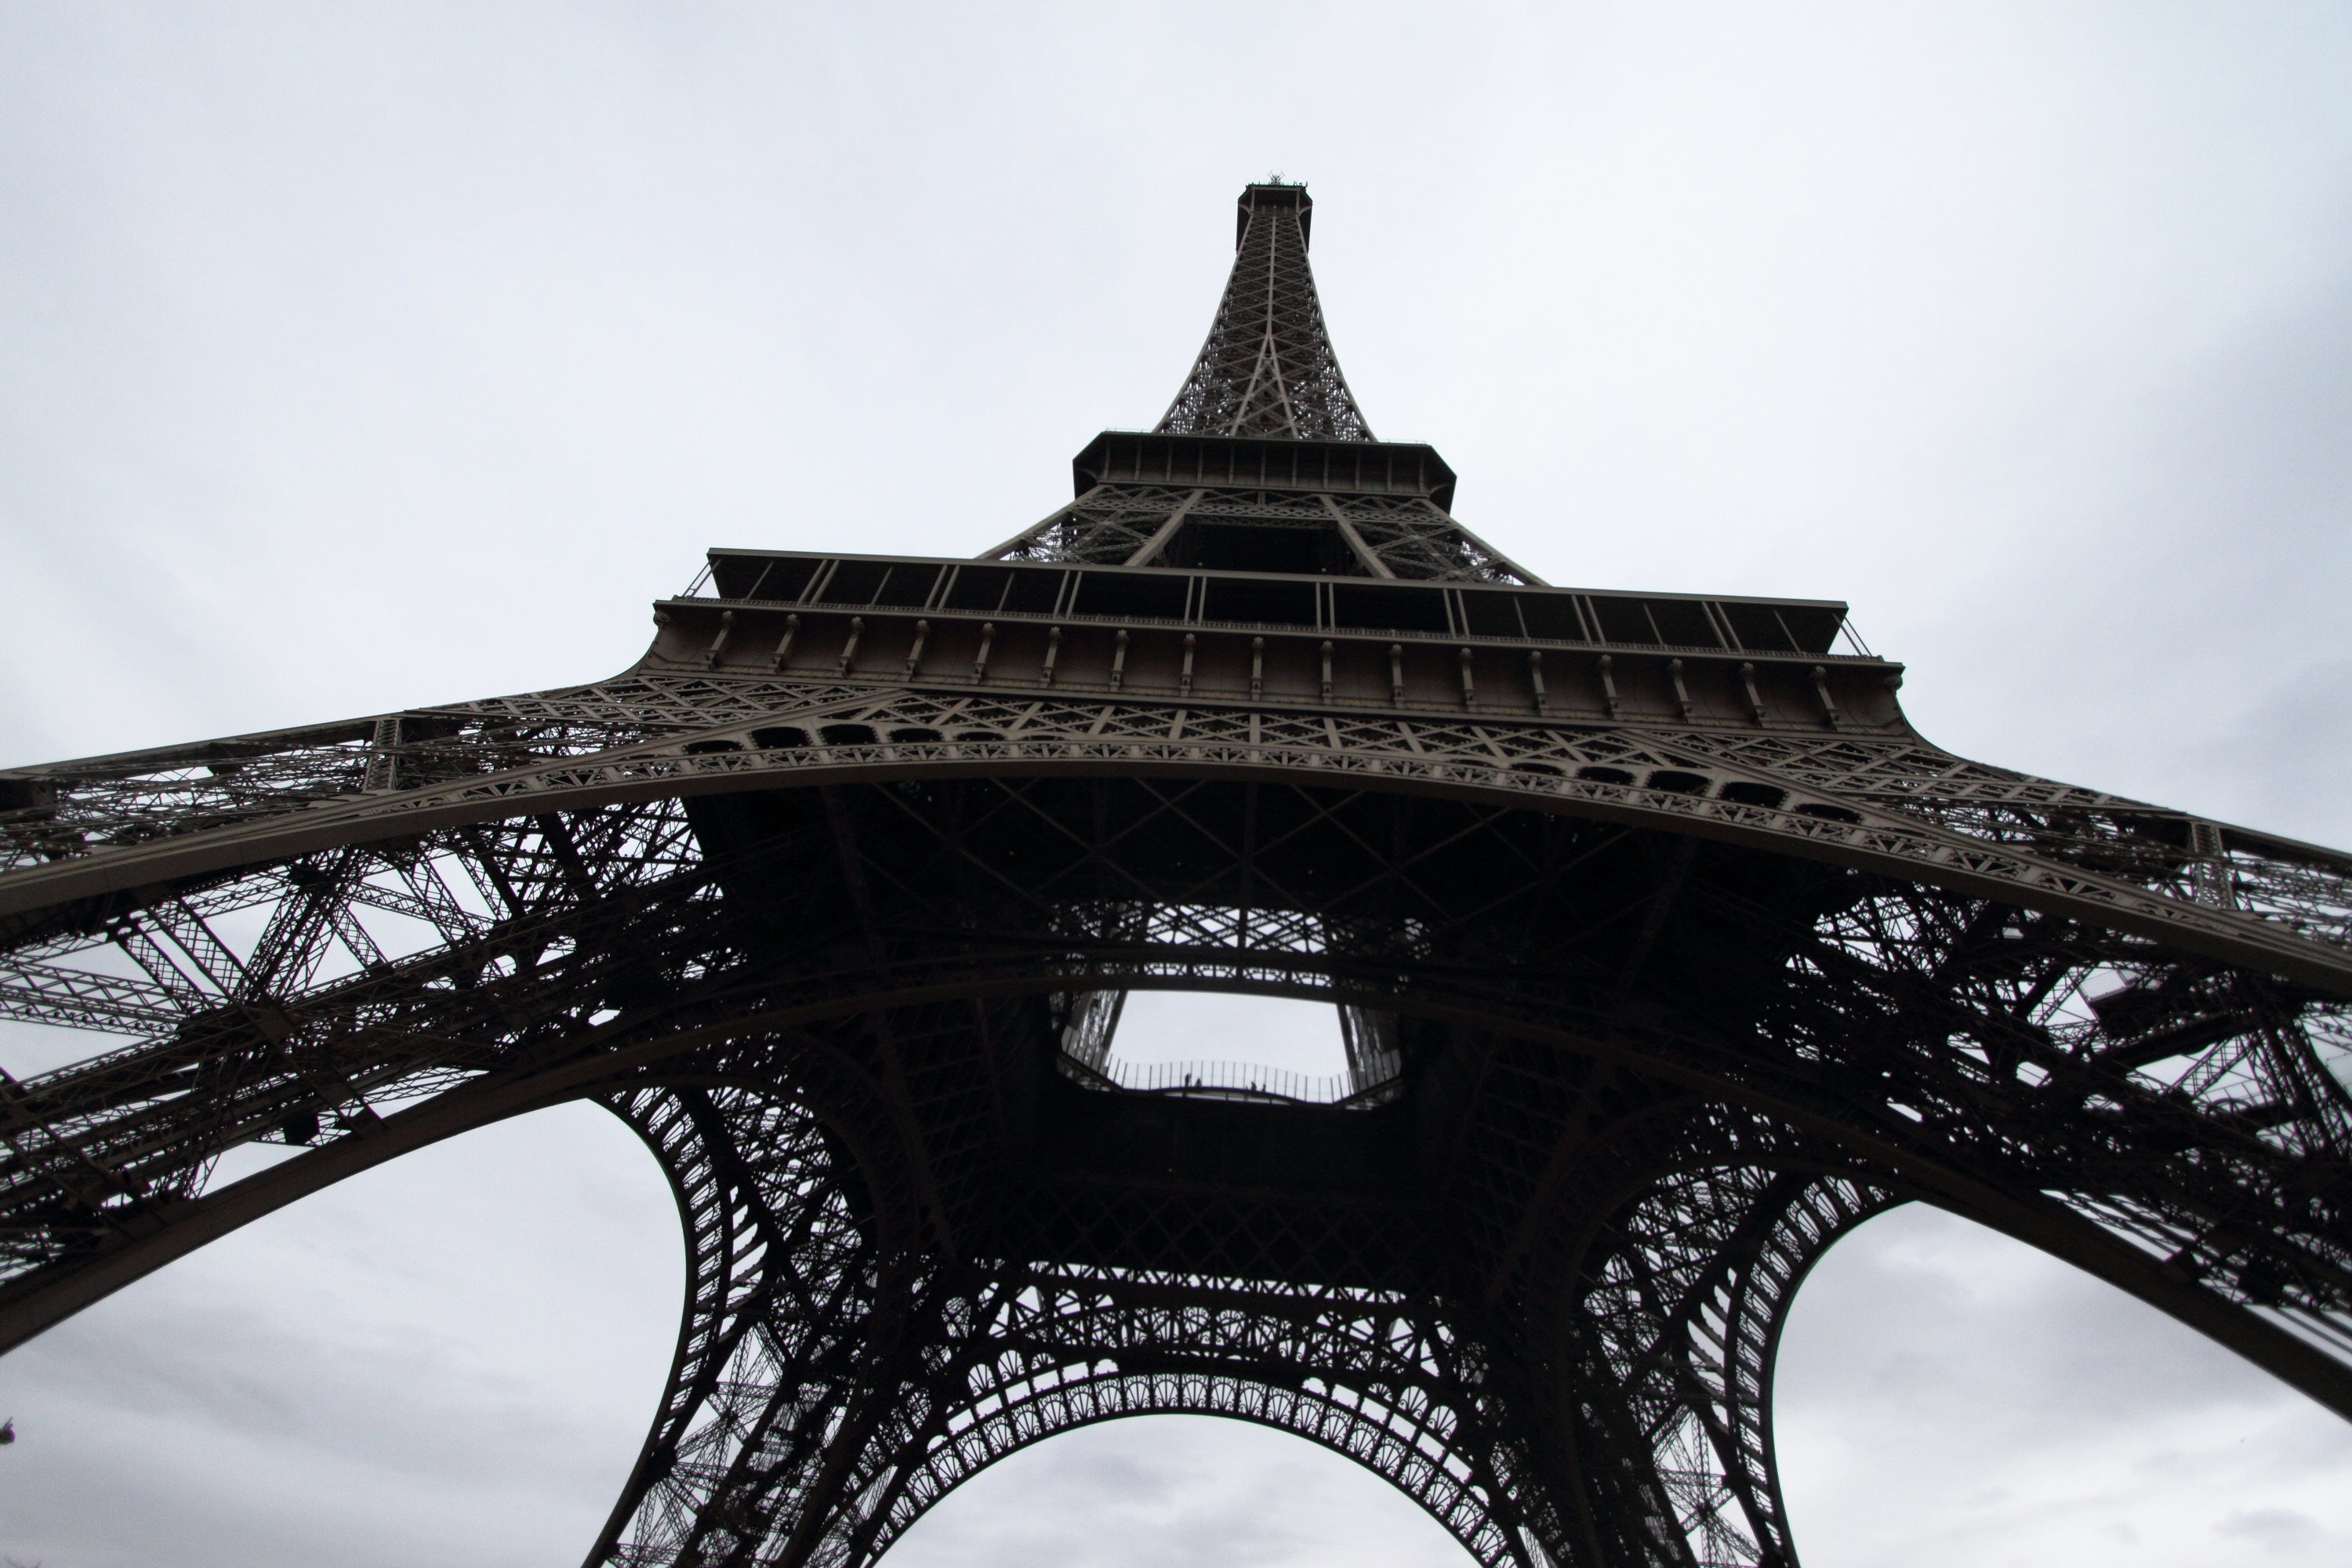 Tour Eiffel monument Instagram